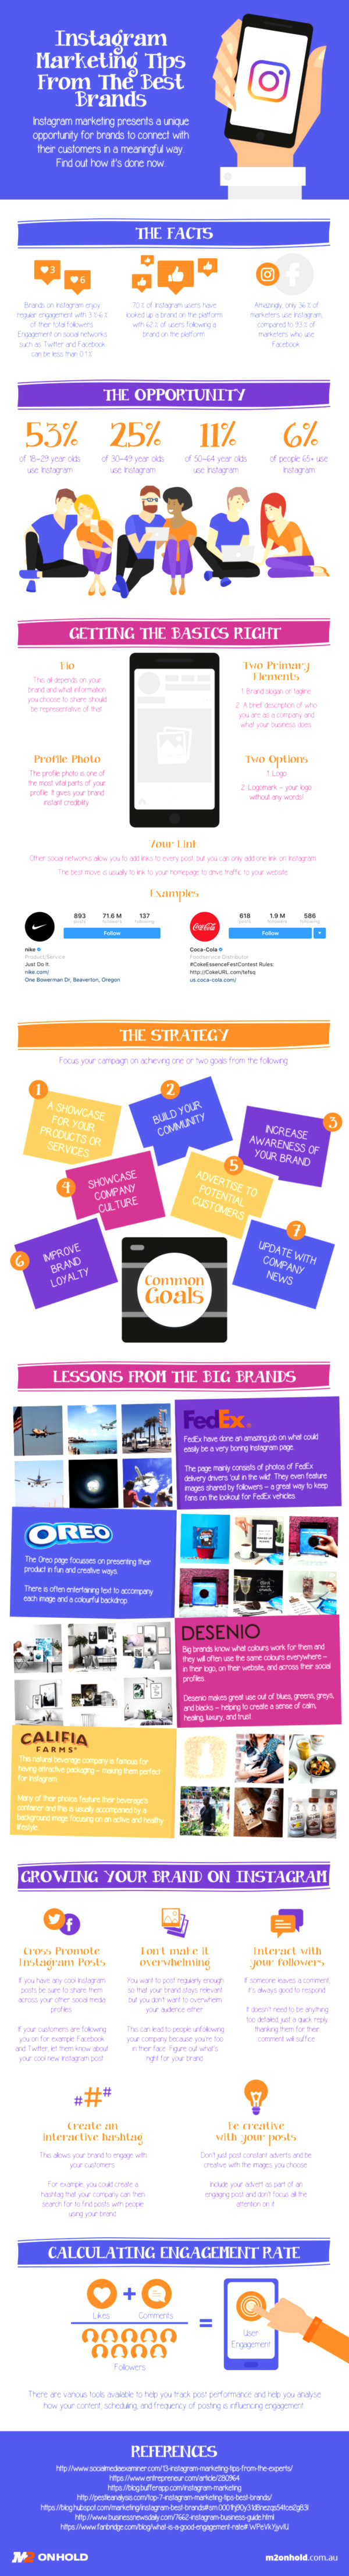 Instagram Marketing - Take advantage of This Untapped Resource (Visual Asset) 1